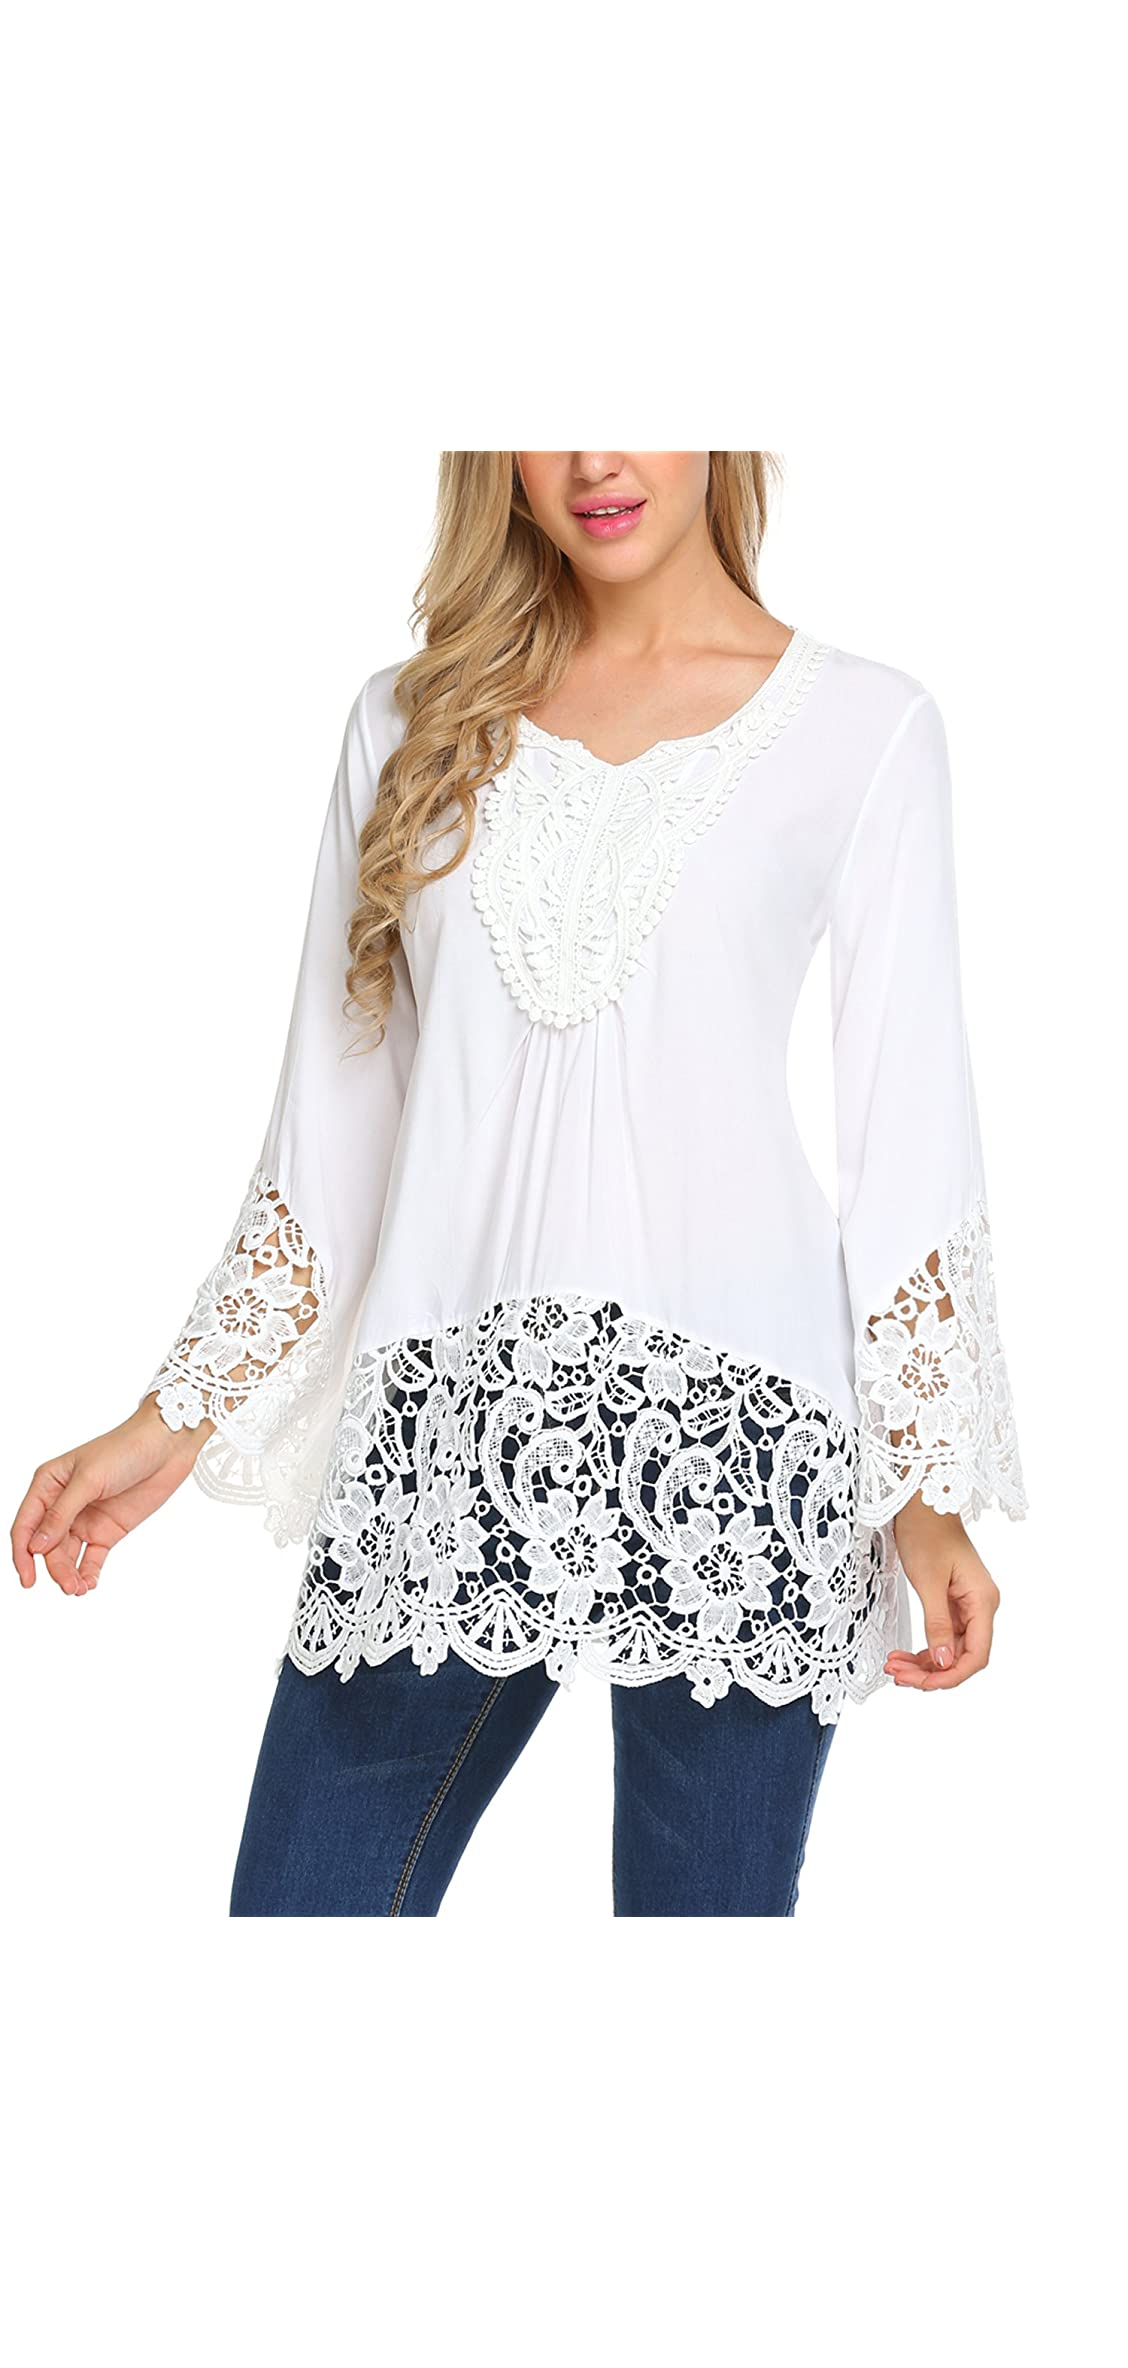 Women's Casual Tops Lace Splice Flare Sleeve Flowy Loose